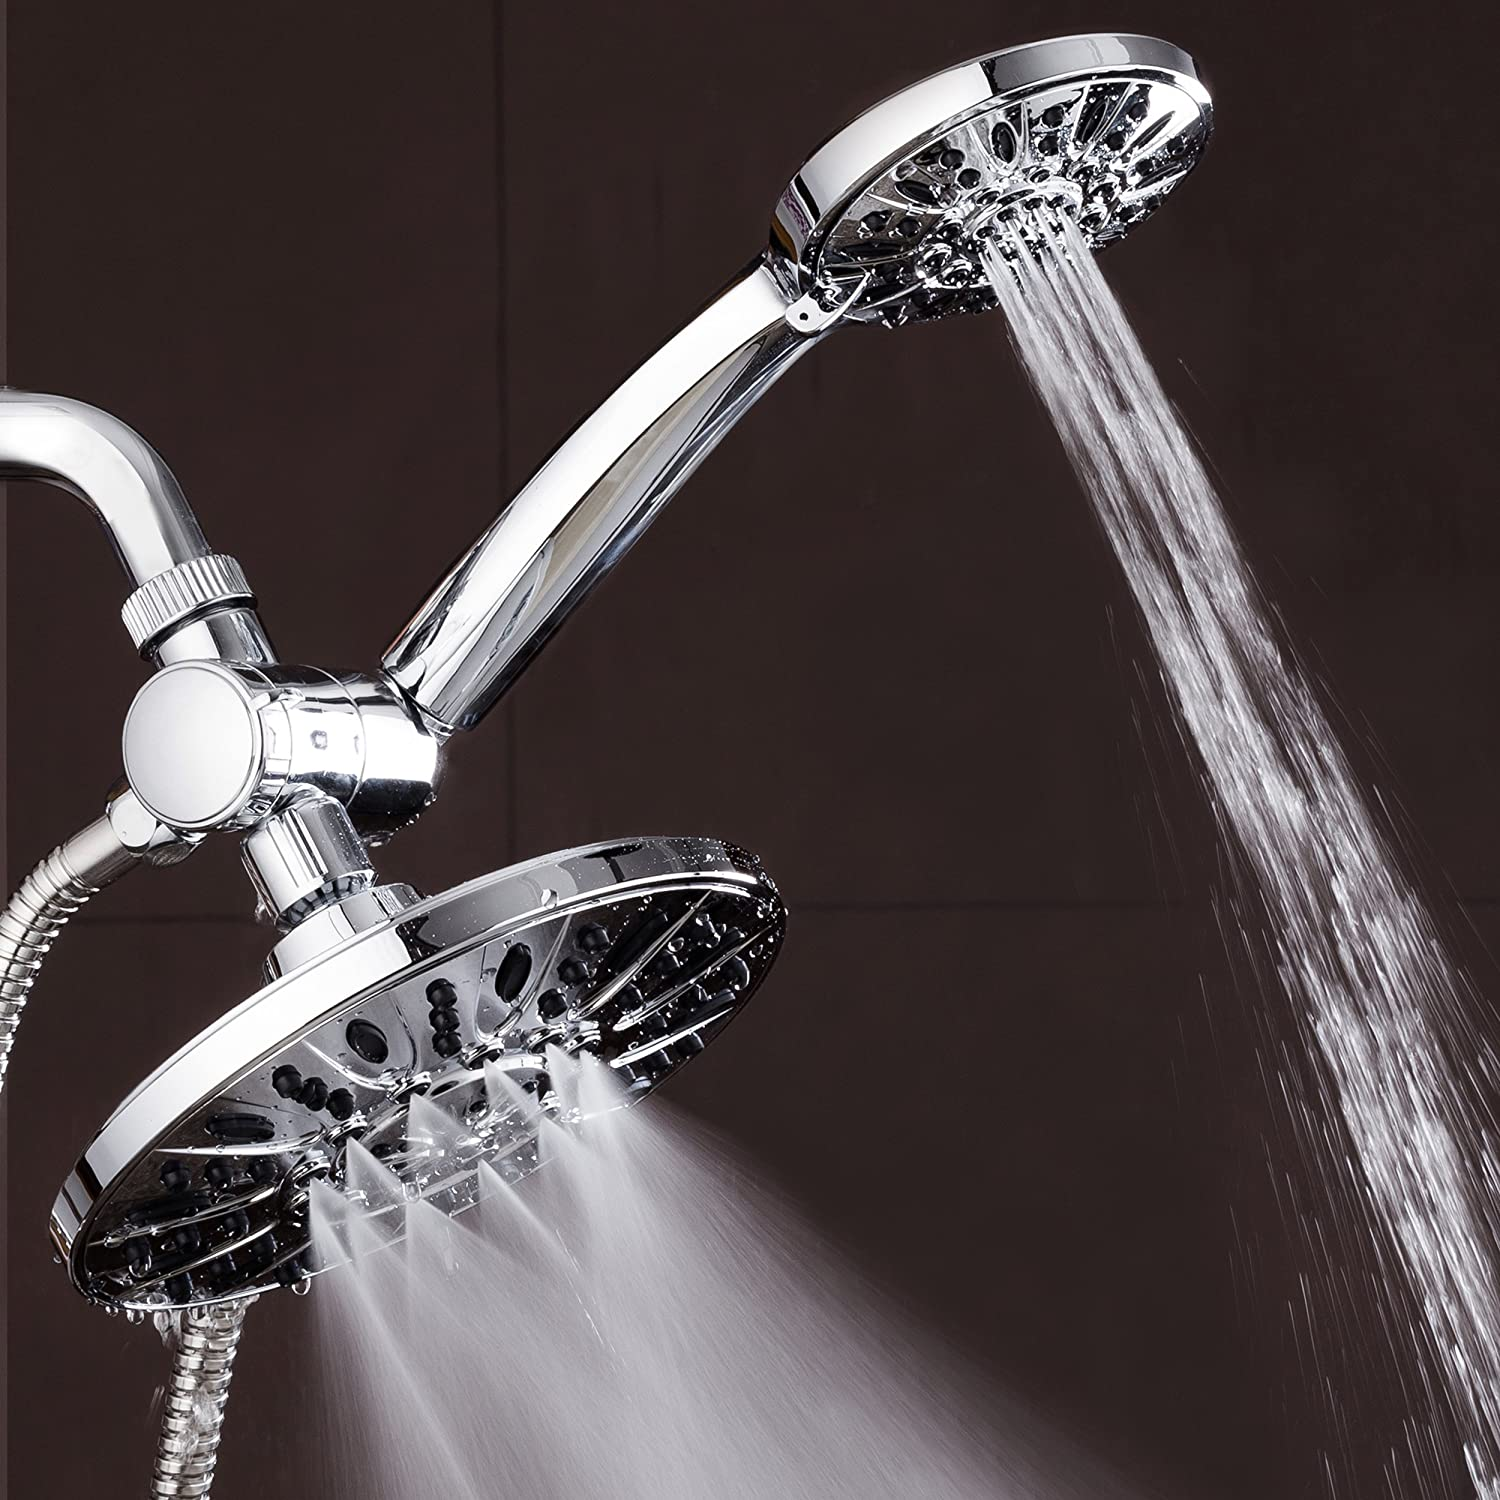 AquaDance 7 Premium High Pressure 3-Way Rainfall Combo for The Best of Both Worlds Oil Rubbed Bronze Finish Enjoy Luxurious Rain Showerhead and 6-Setting Hand Held Shower Separately or Together